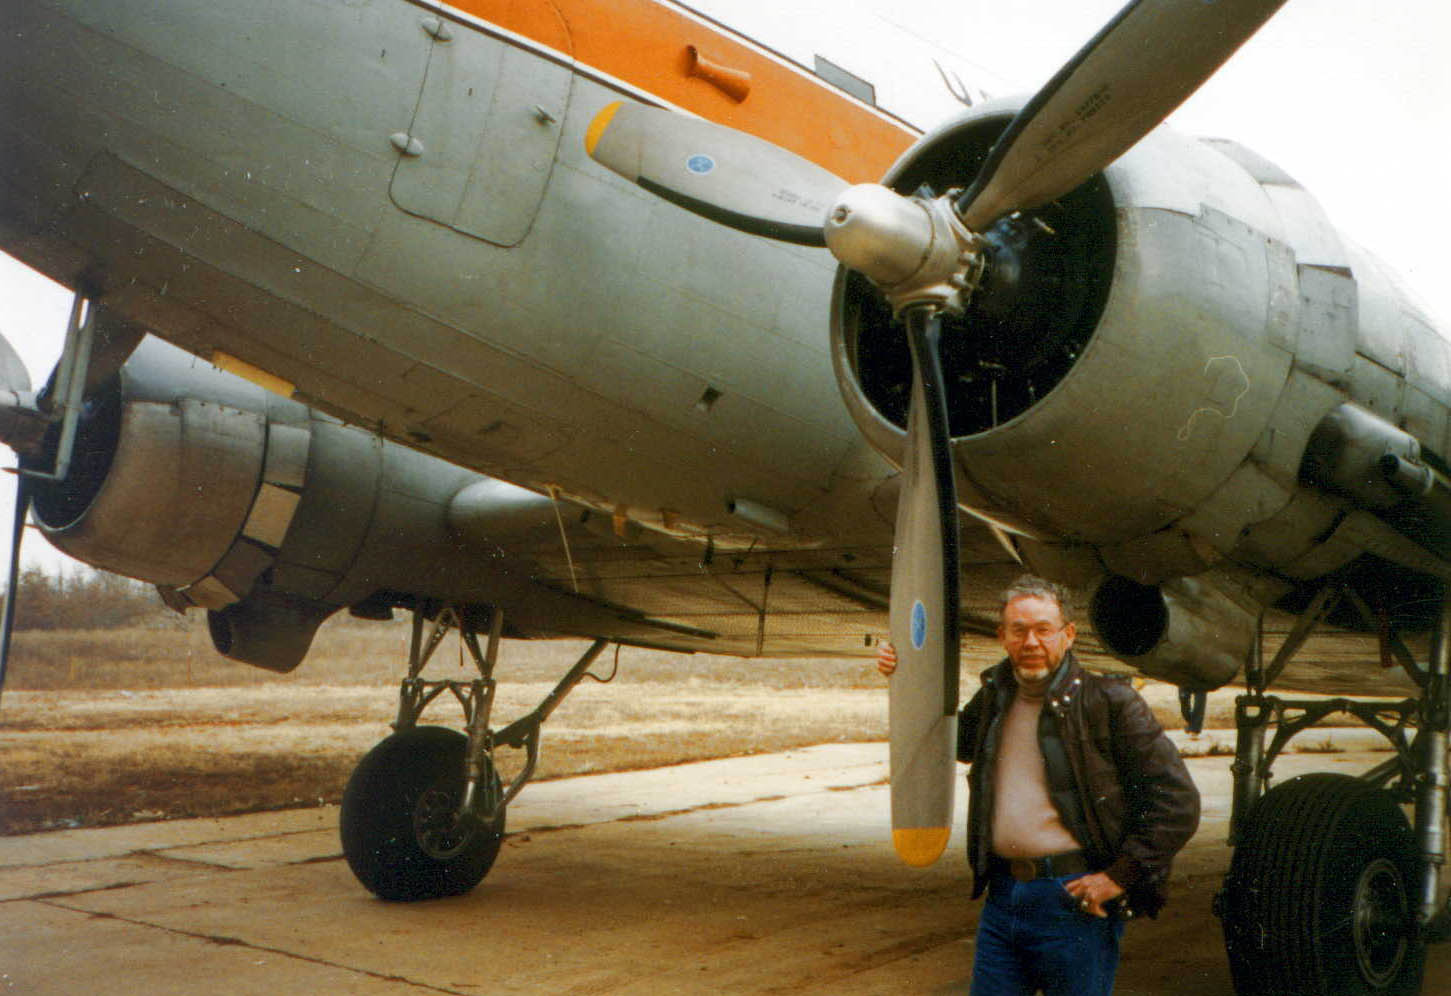 This photo shows the DC-3 before turbine conversion and new paint and a man standing next to it.